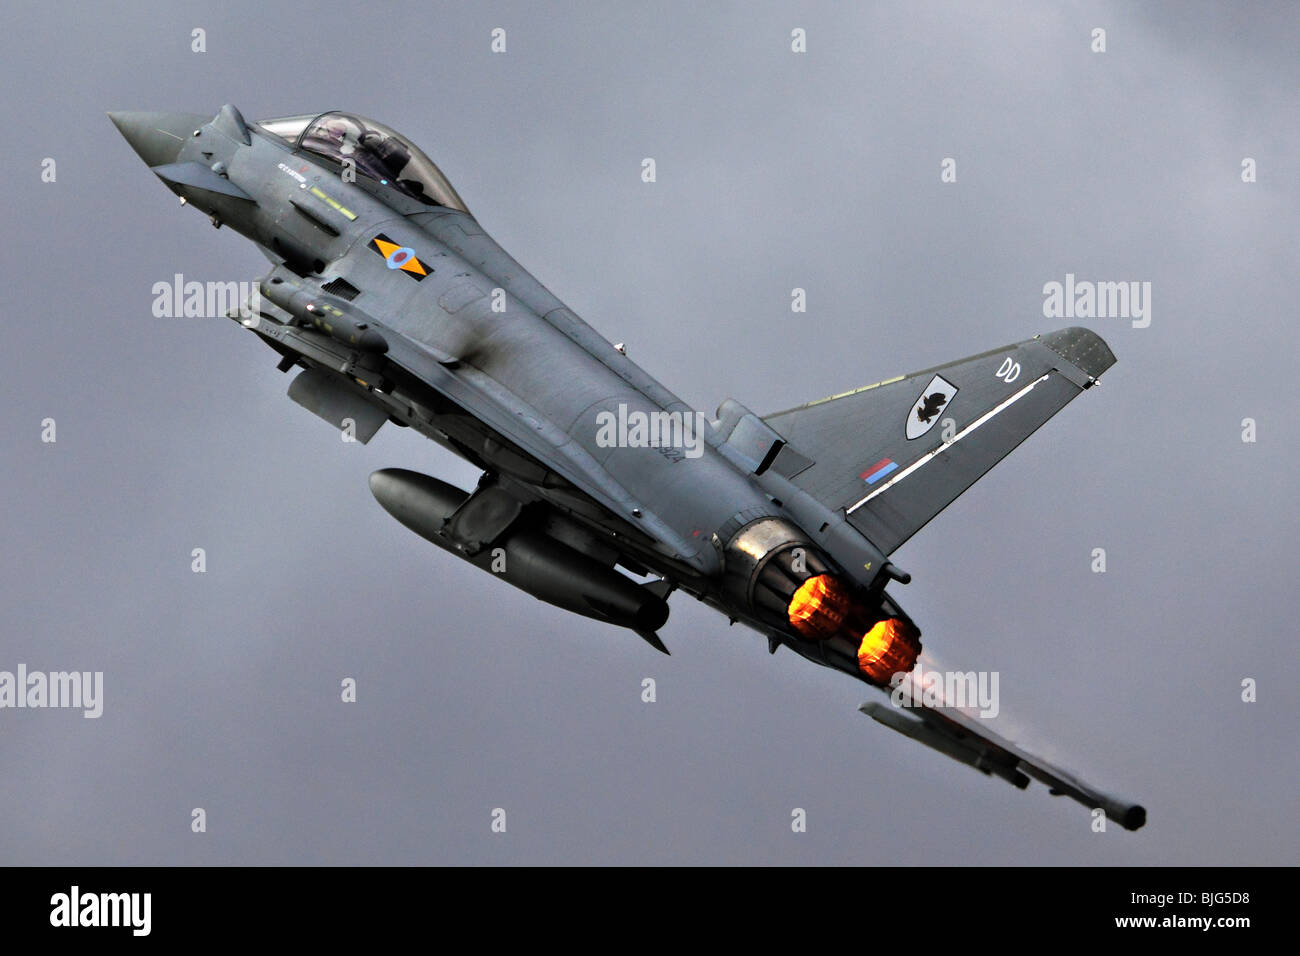 Eurofighter Typhoon is a twin-engine canard-delta wing multirole aircraft at the Royal International Air Tattoo - Stock Image